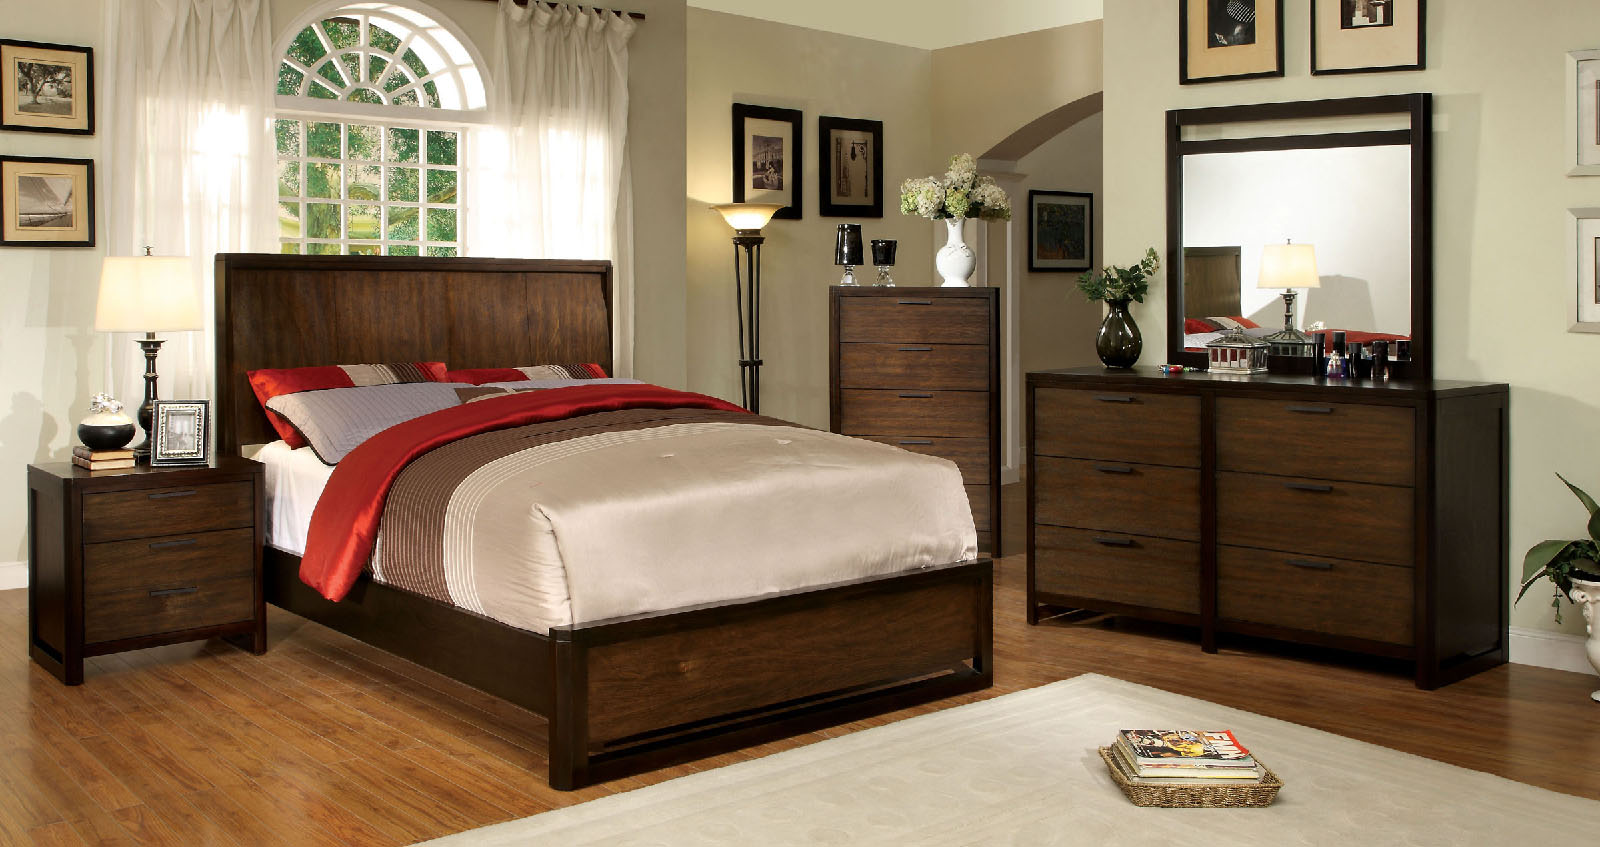 Bisbee Cm7607 4pc Bedroom Set Furniture Mattress Los Angeles And El Monte